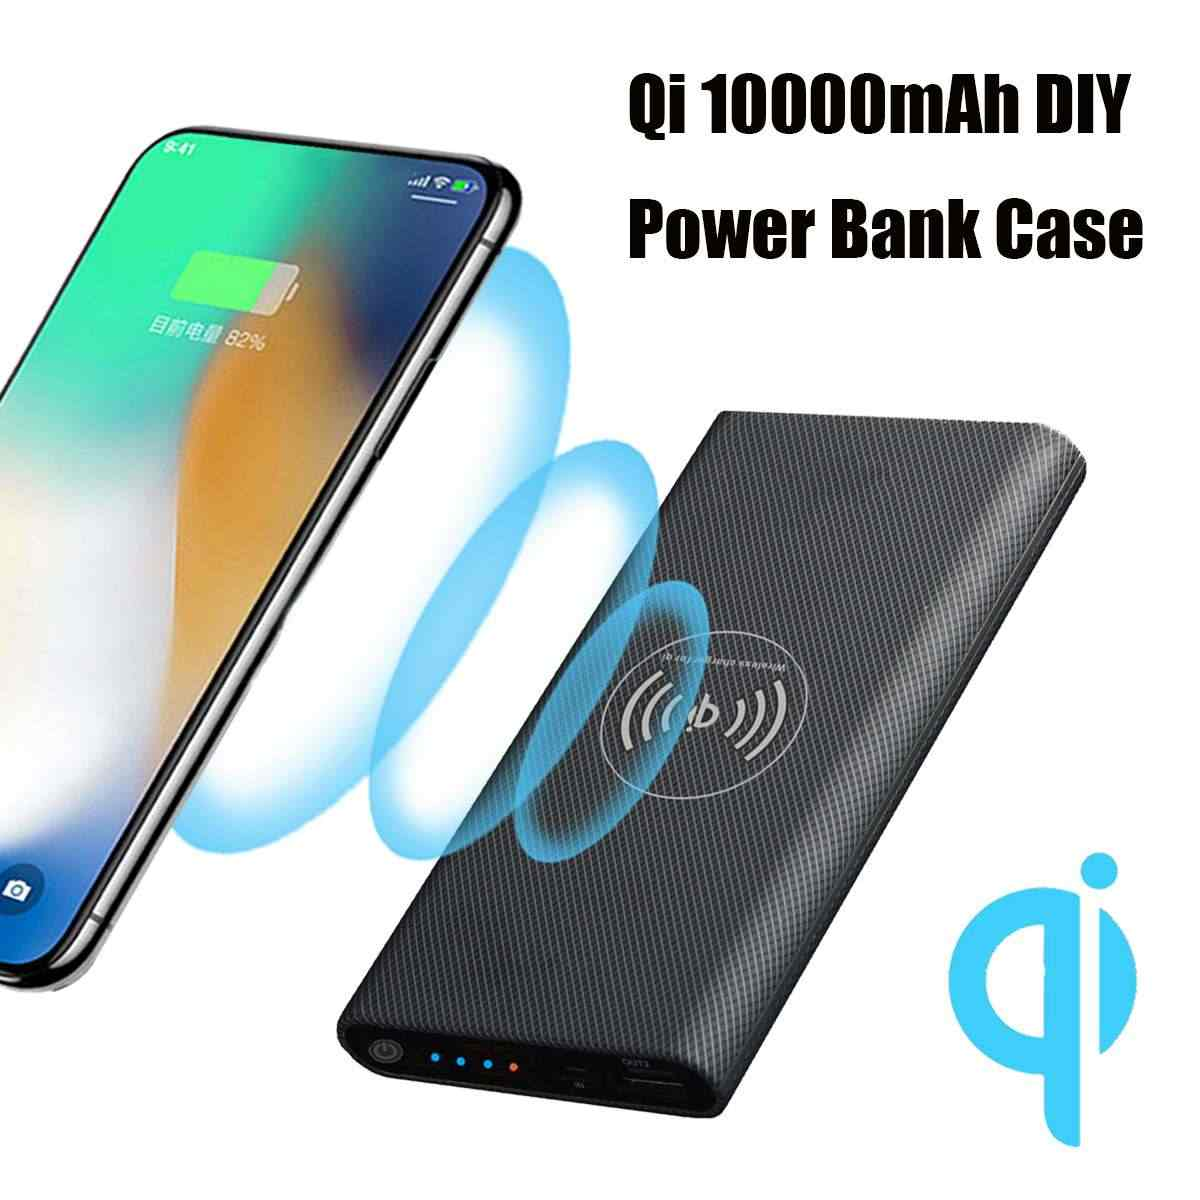 Diy Power Bank Bakeey Qi Wireless Charging Diy Power Bank Case 10000mah Without Battery Diy Power Bank Charger Box Kit For Iphone Xs Xr Xiaomi